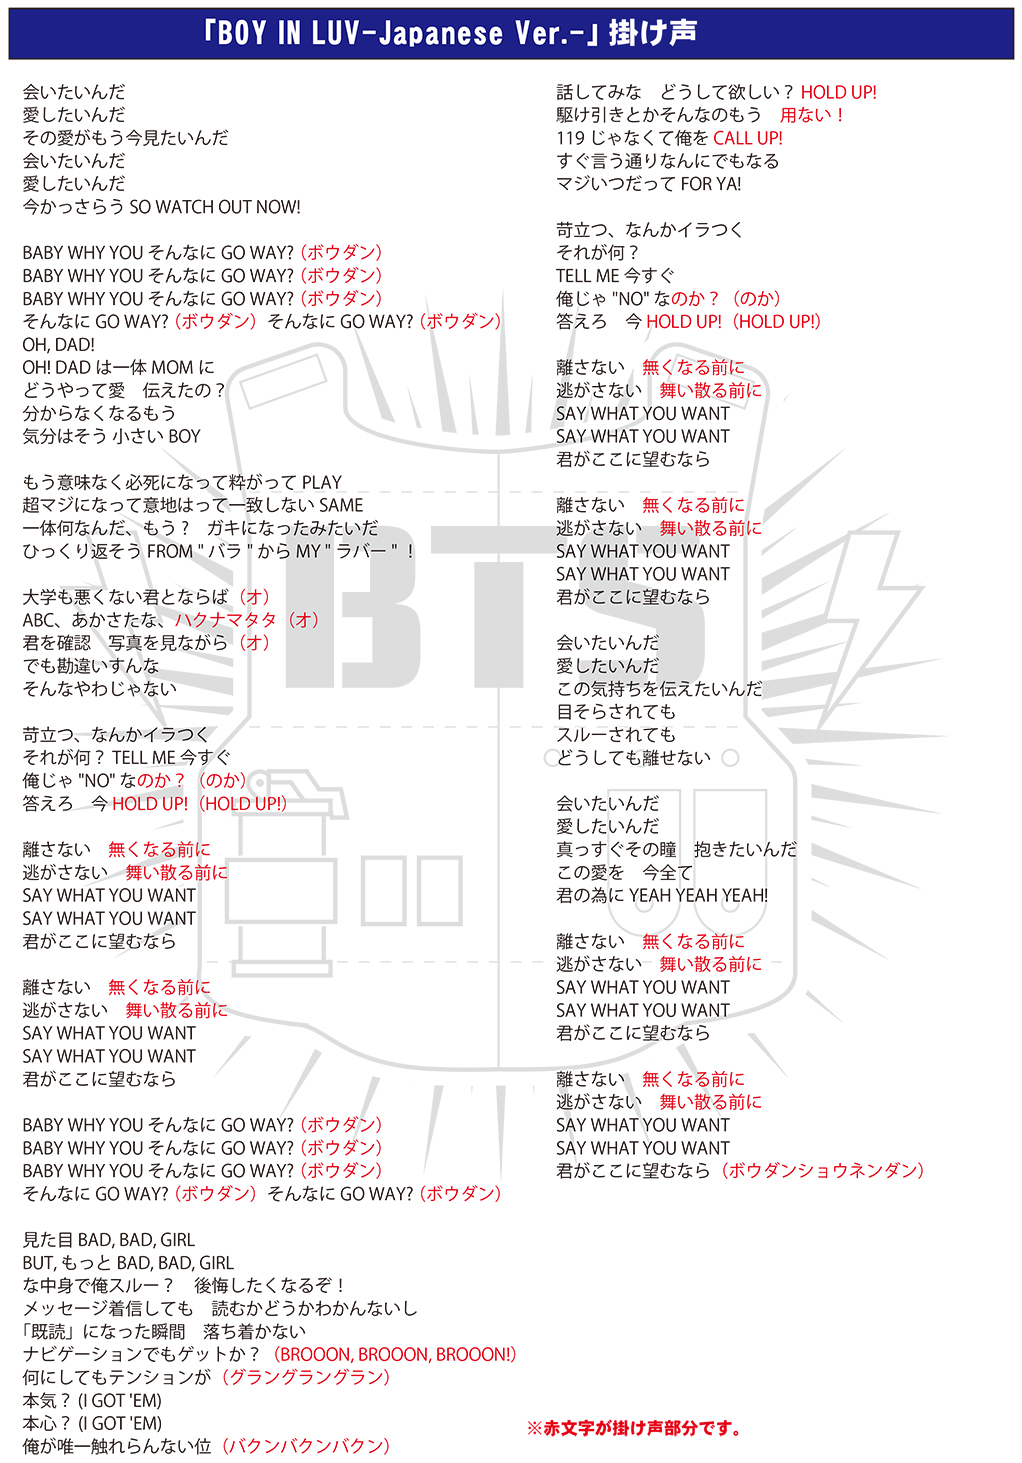 BOY IN LUV-Japanese Ver.-